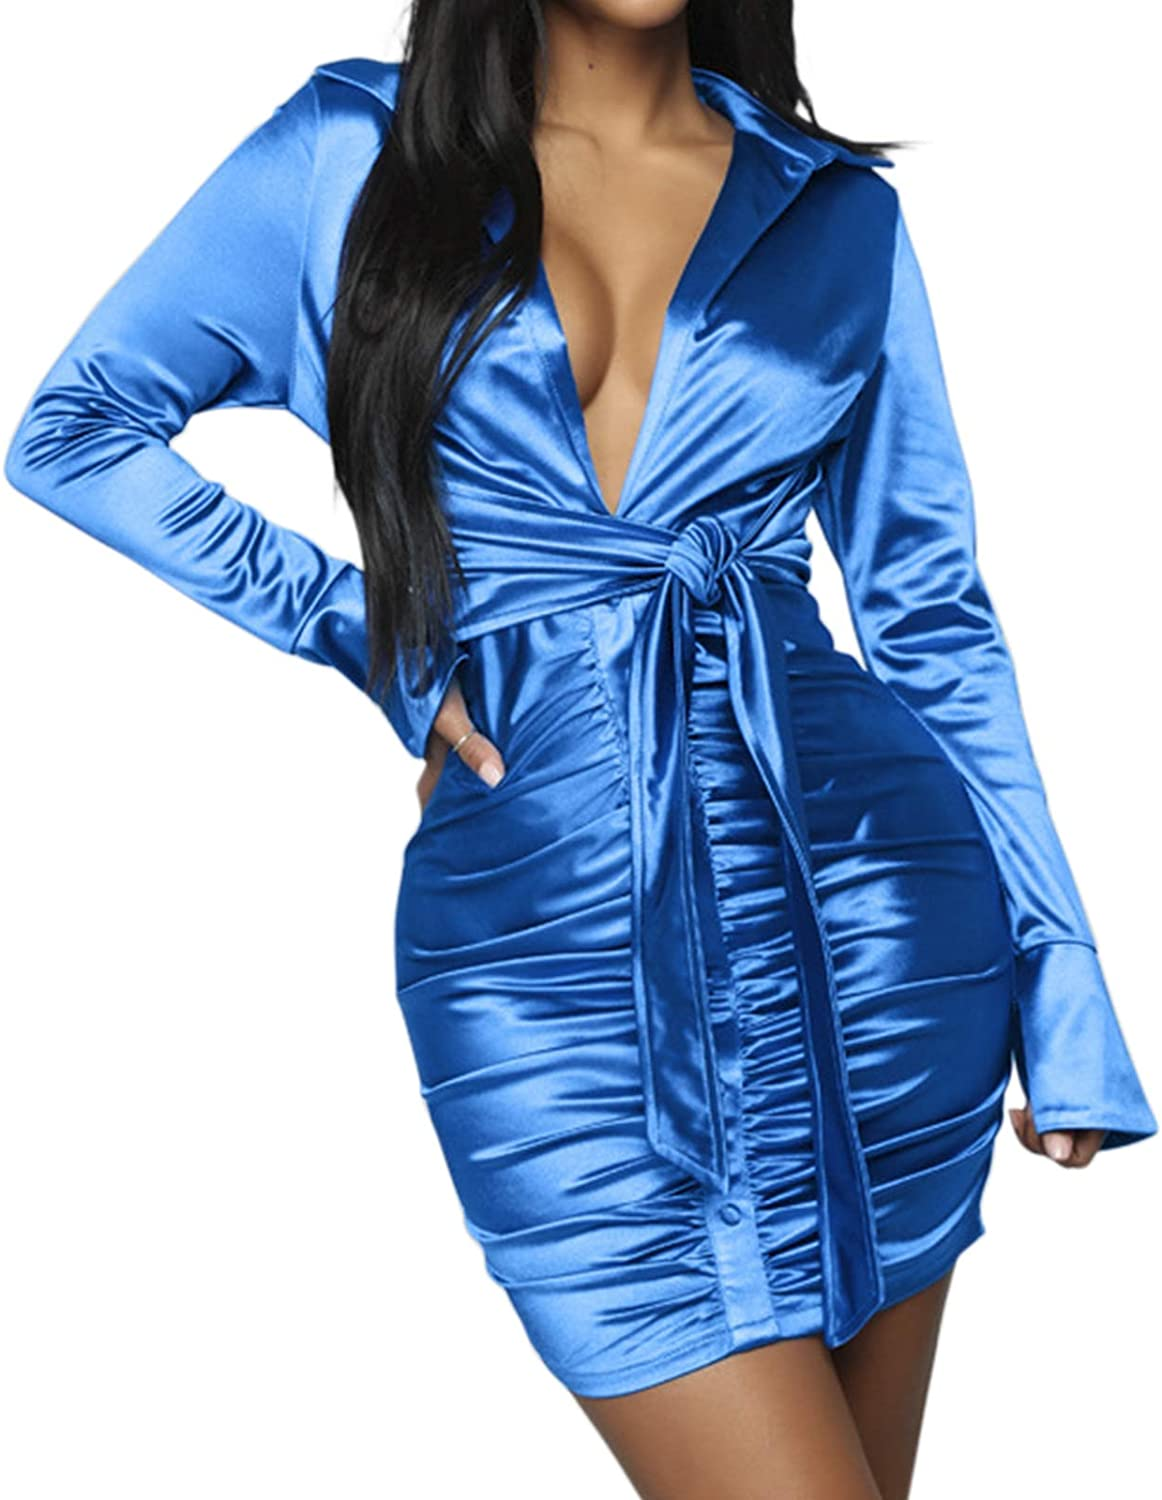 Sedrinuo Women Sexy Long Sleeve Club Outfits Dress Tie Front V Neck Ruched Mini Dresses